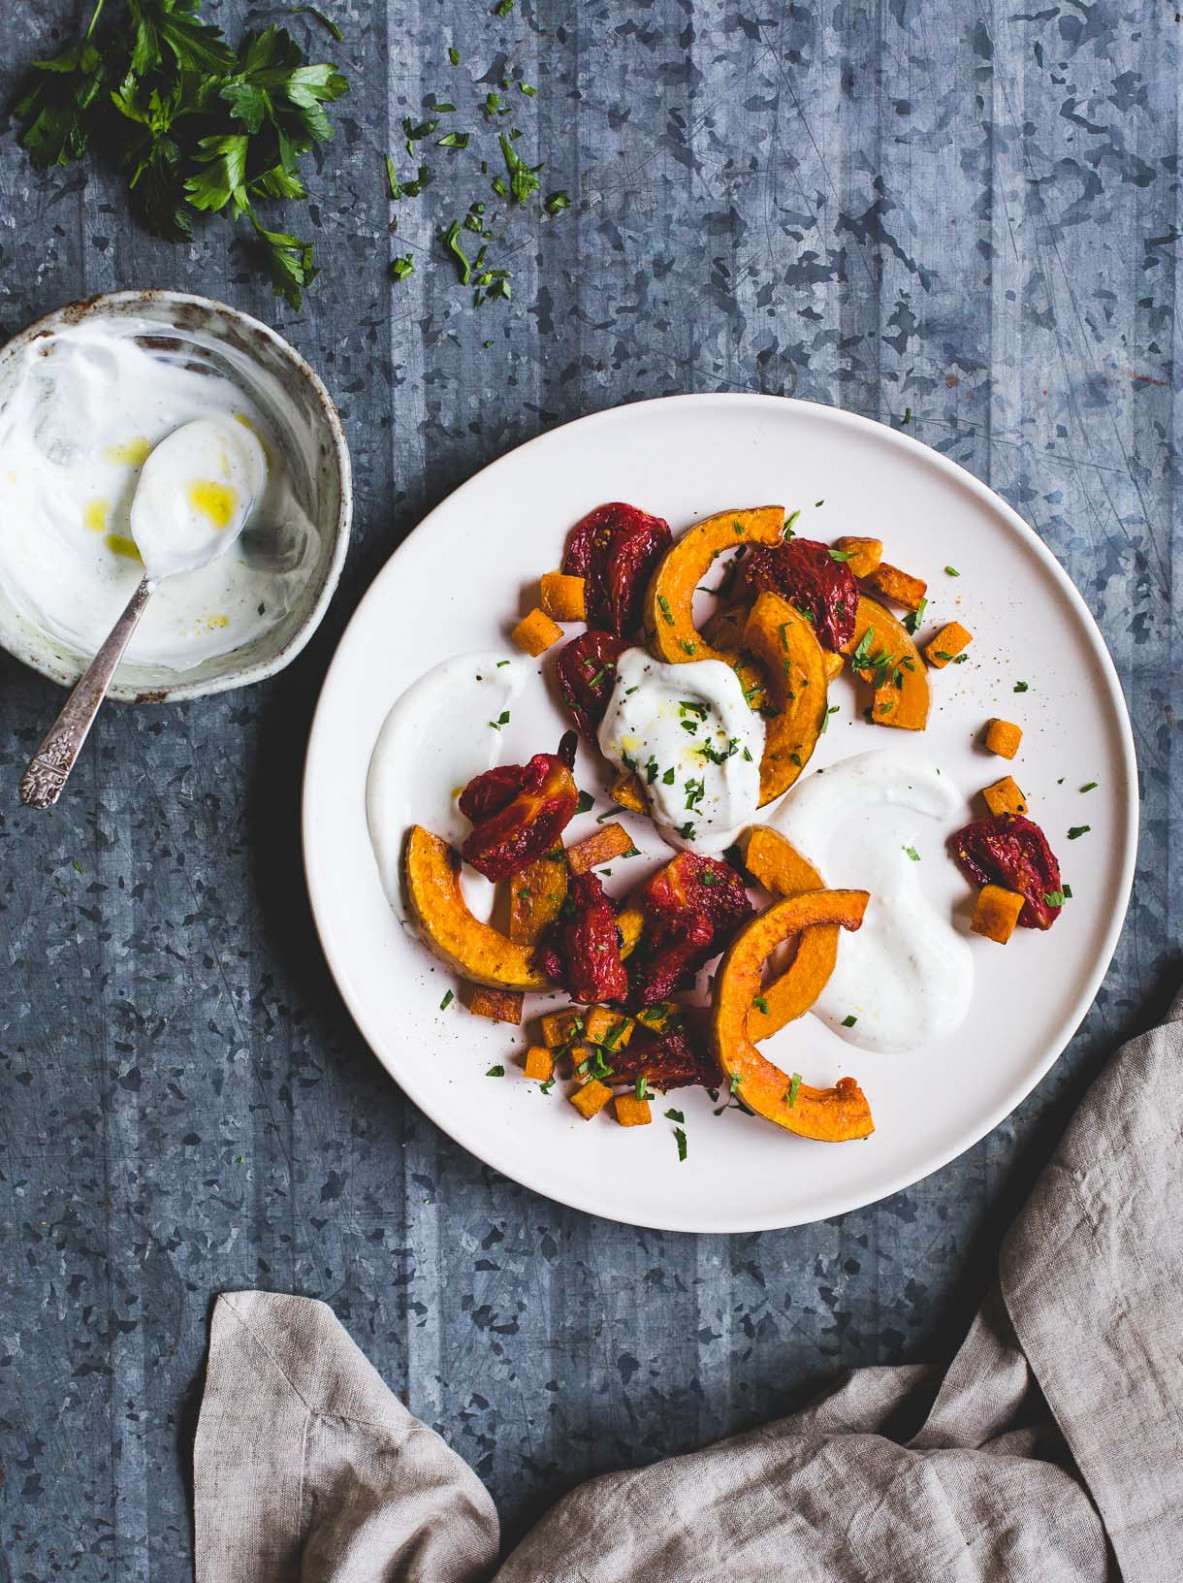 Oven Roasted Butternut Squash and Tomatoes with Yogurt Sauce